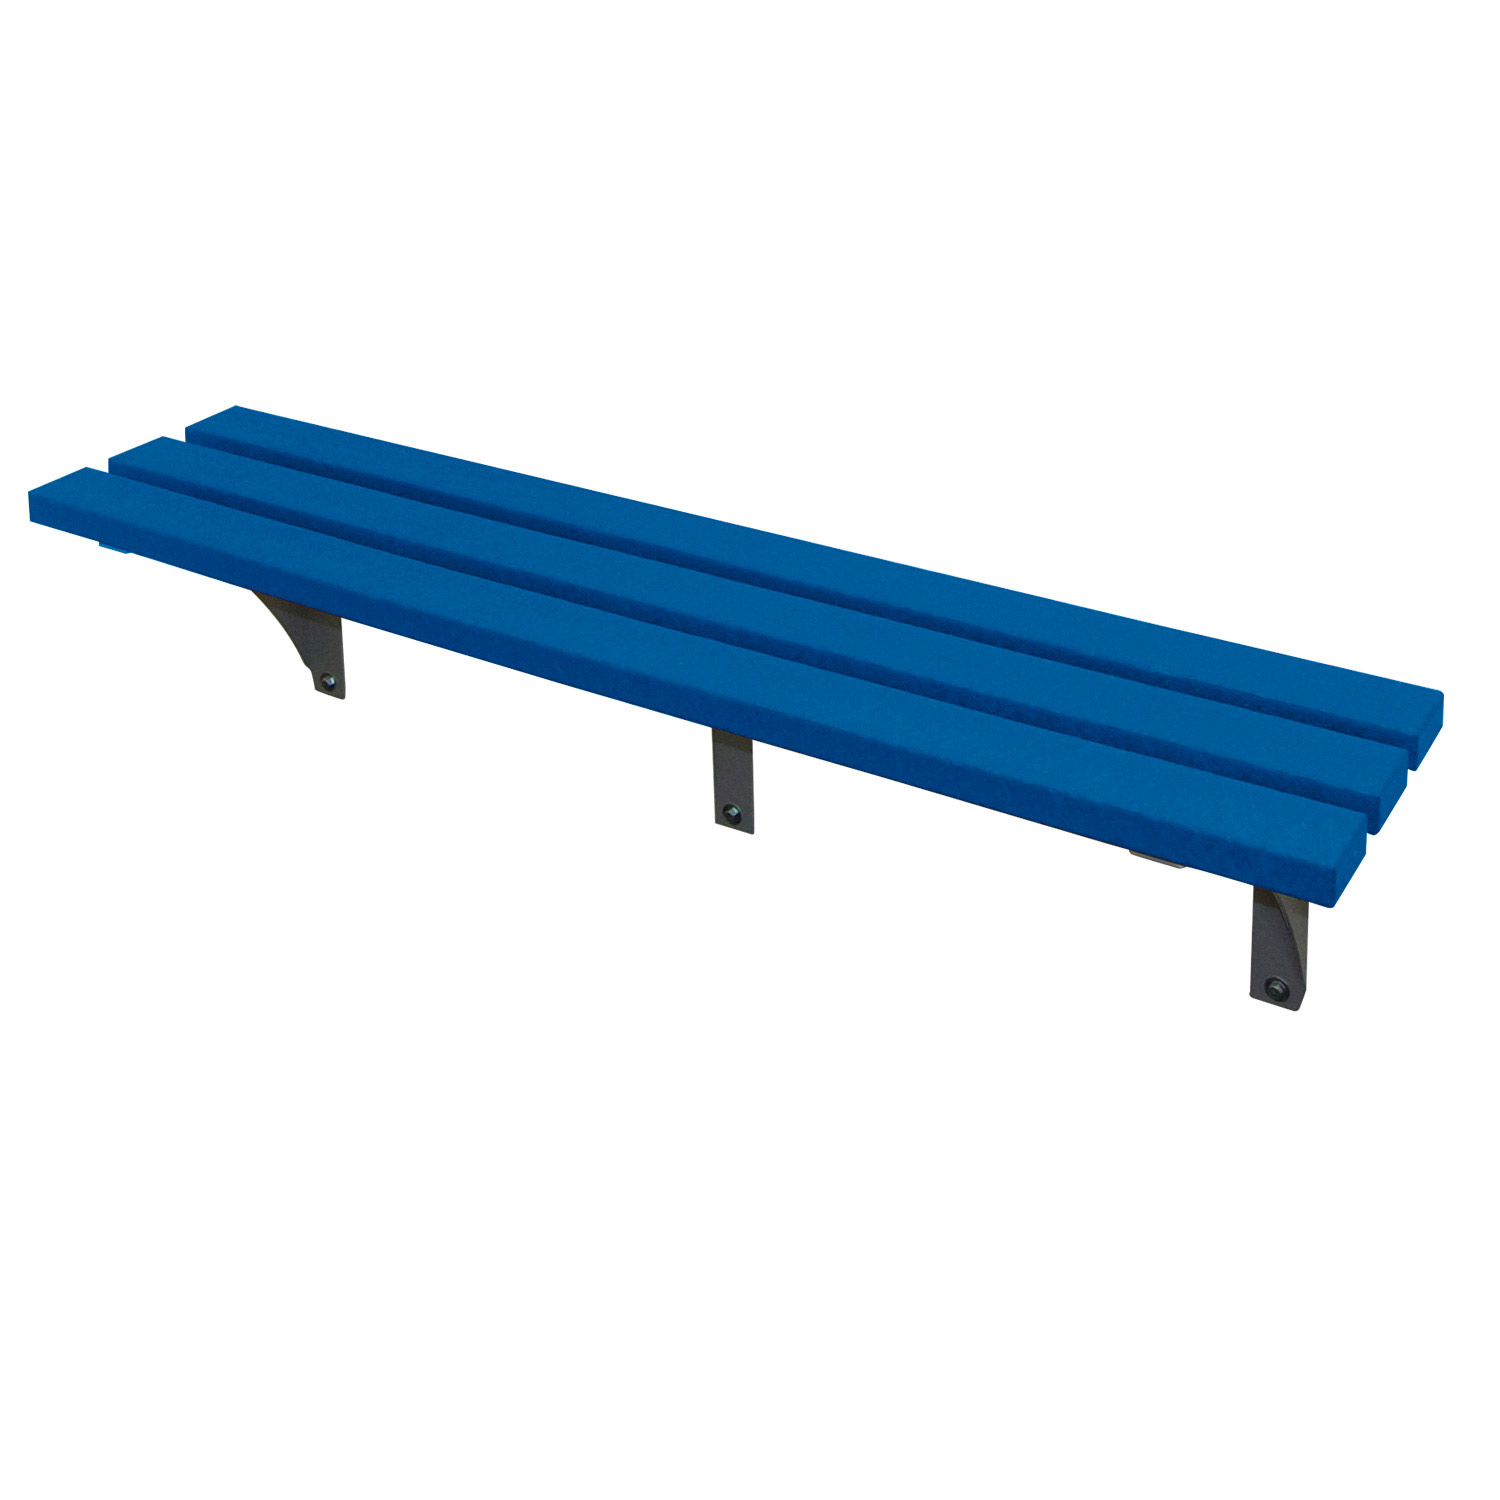 636638082691299164_blue-bench-web.jpg